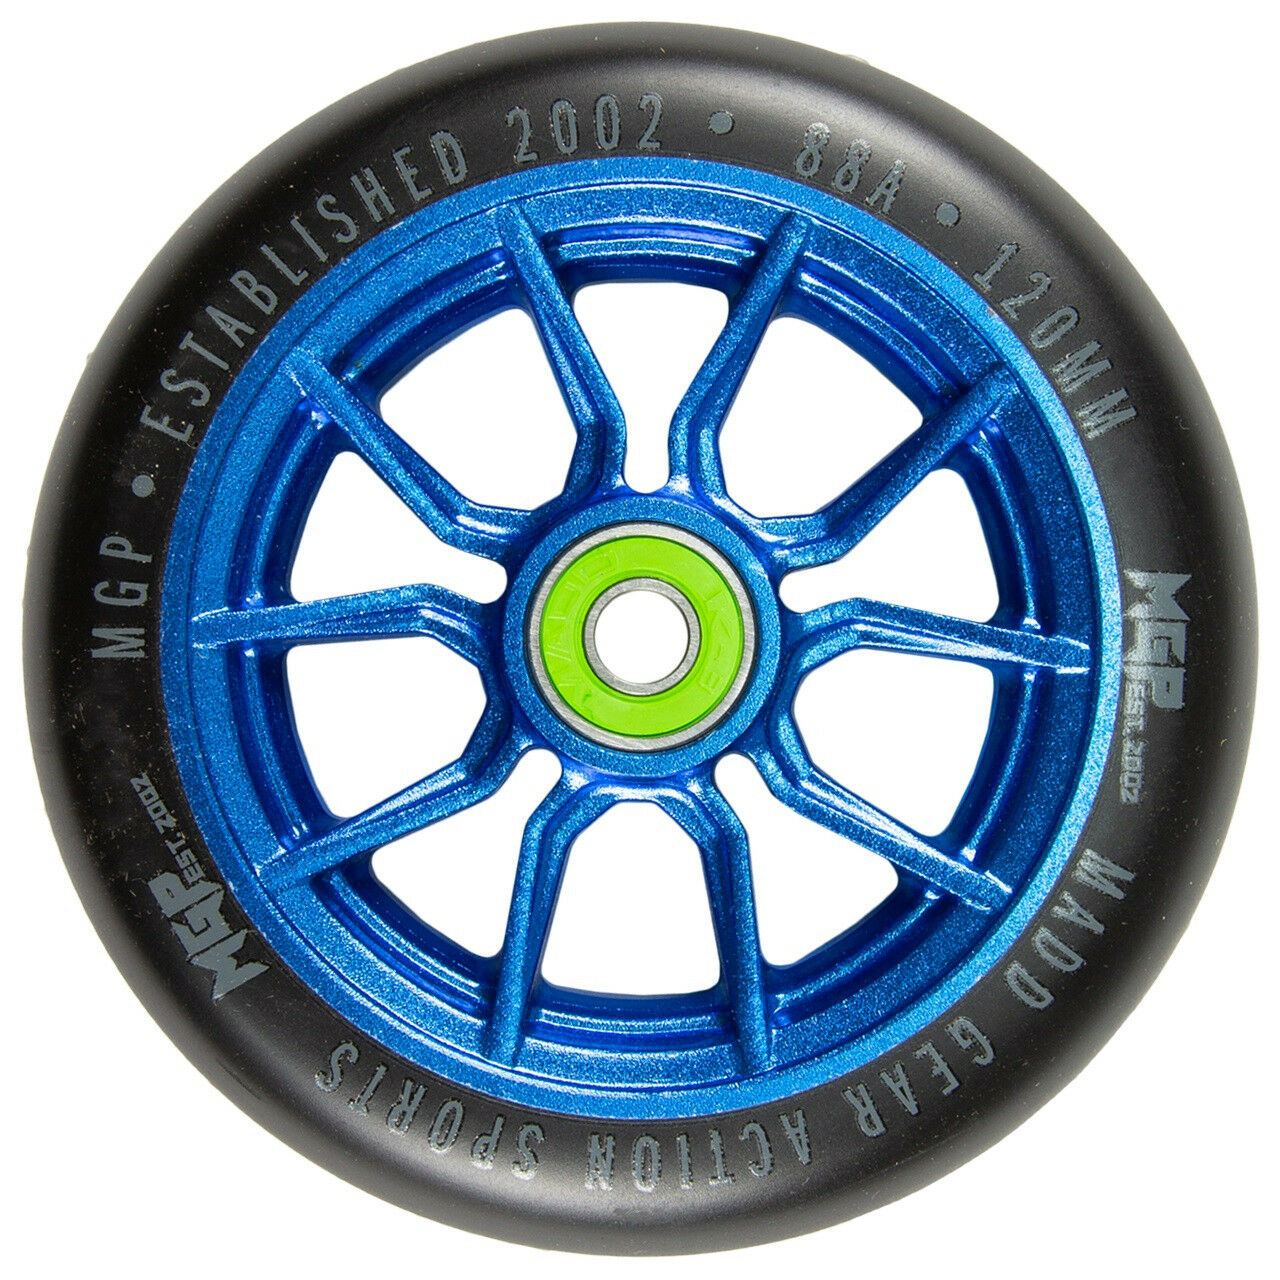 Madd MFX AR120 Syndicate 120mm Alloy Core Scooter Wheels (Pair) bluee